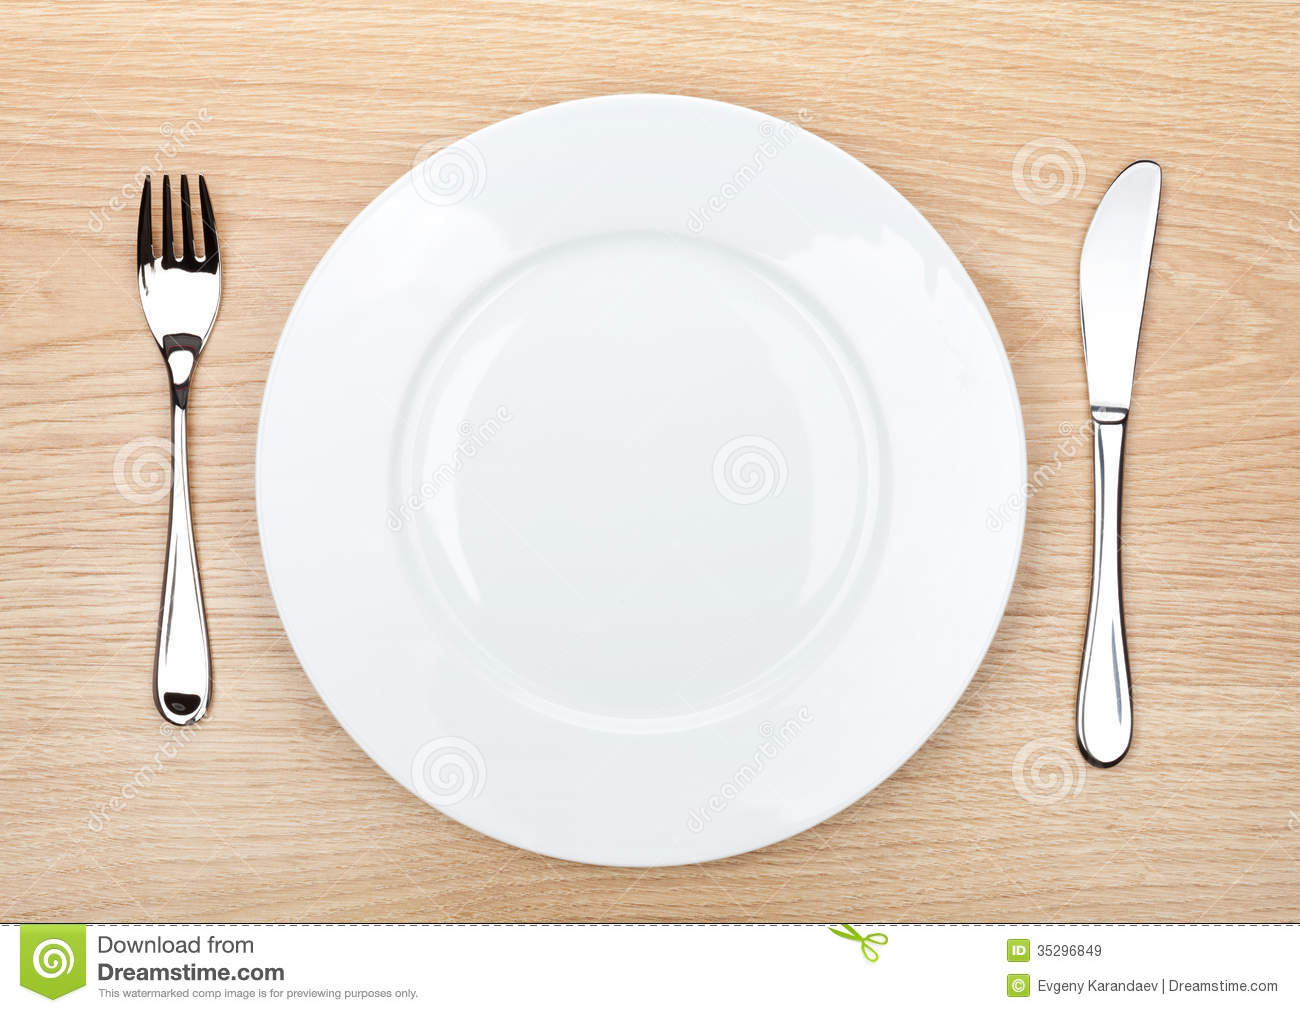 Empty White Plate With Silverware On Wooden Table Royalty